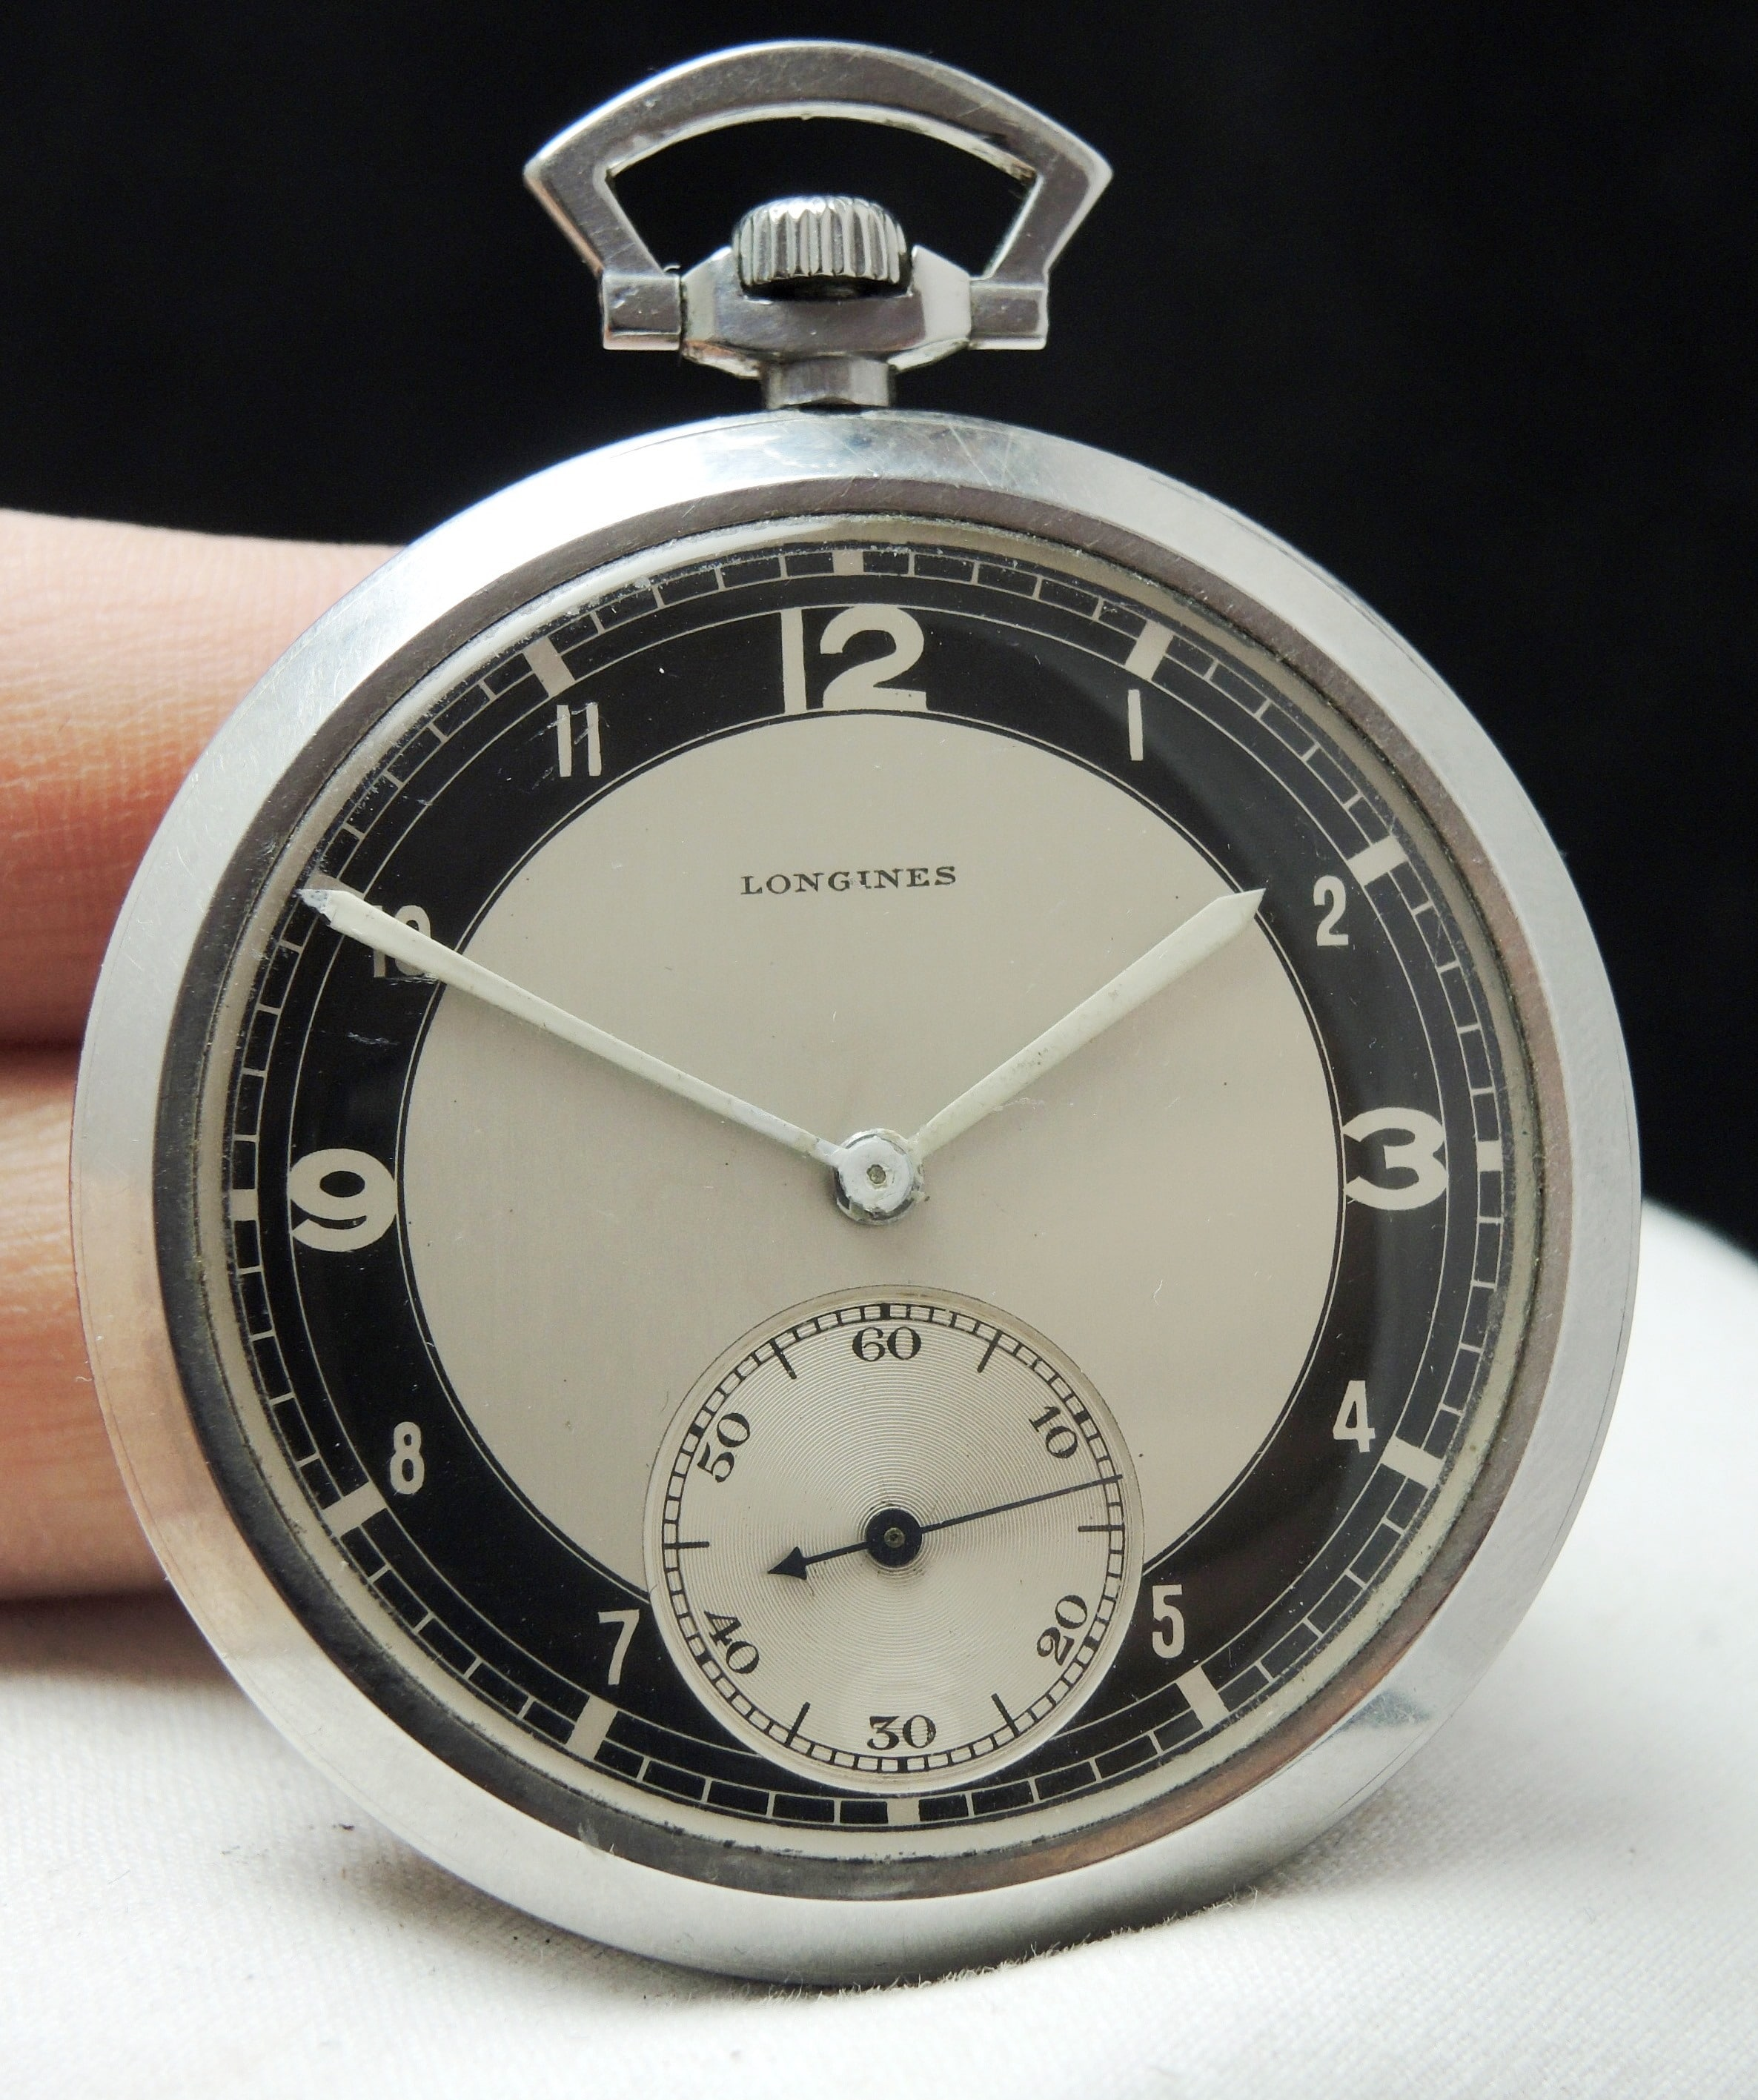 dating a longines pocket watch Old and antique pocket watches for sale dating from the mid- 19th century to  great looking longines tank watch,  vintage pocket watch and wristwatch.